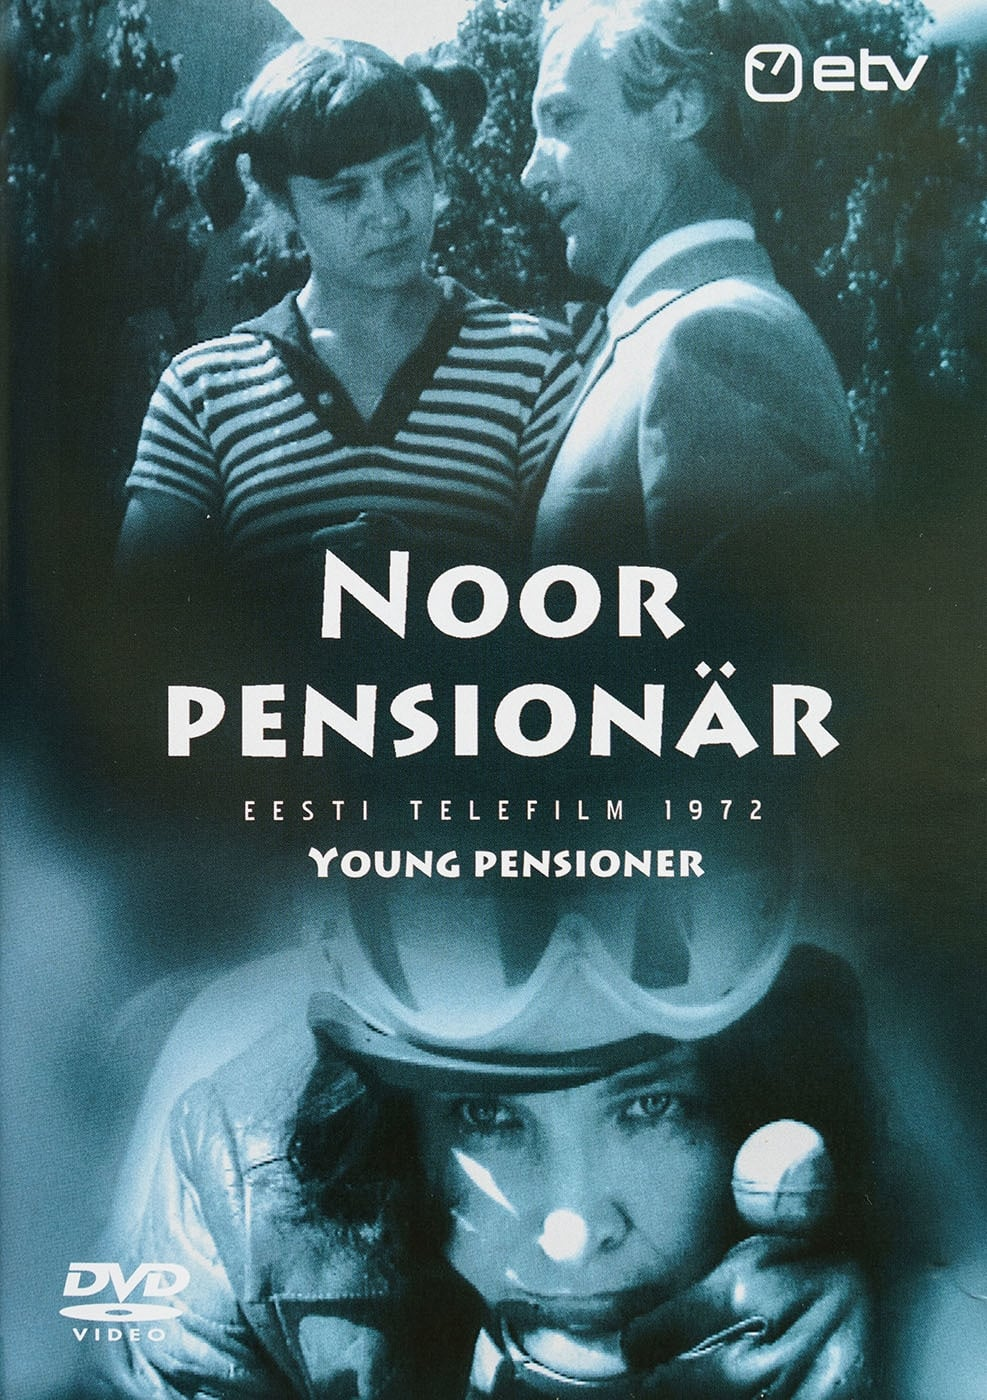 Young Pensioner (1972)